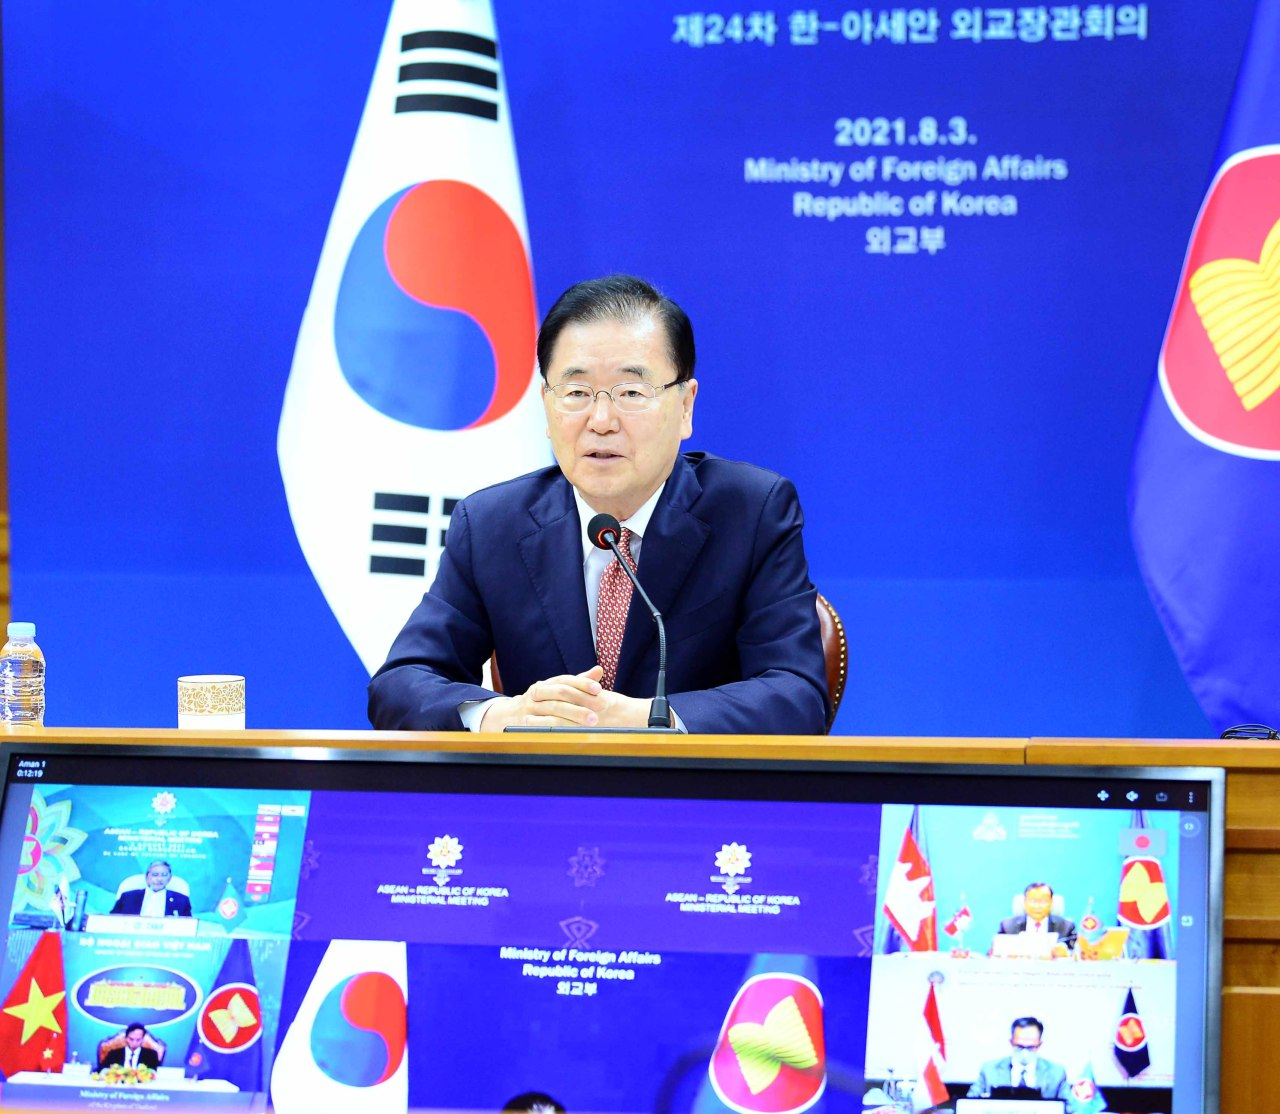 South Korean Foreign Minister Chung Eui-yong speaks during the South Korea-ASEAN foreign ministerial meeting via video link at the foreign ministry in Seoul on Tuesday. (Ministry of Foreign Affairs)